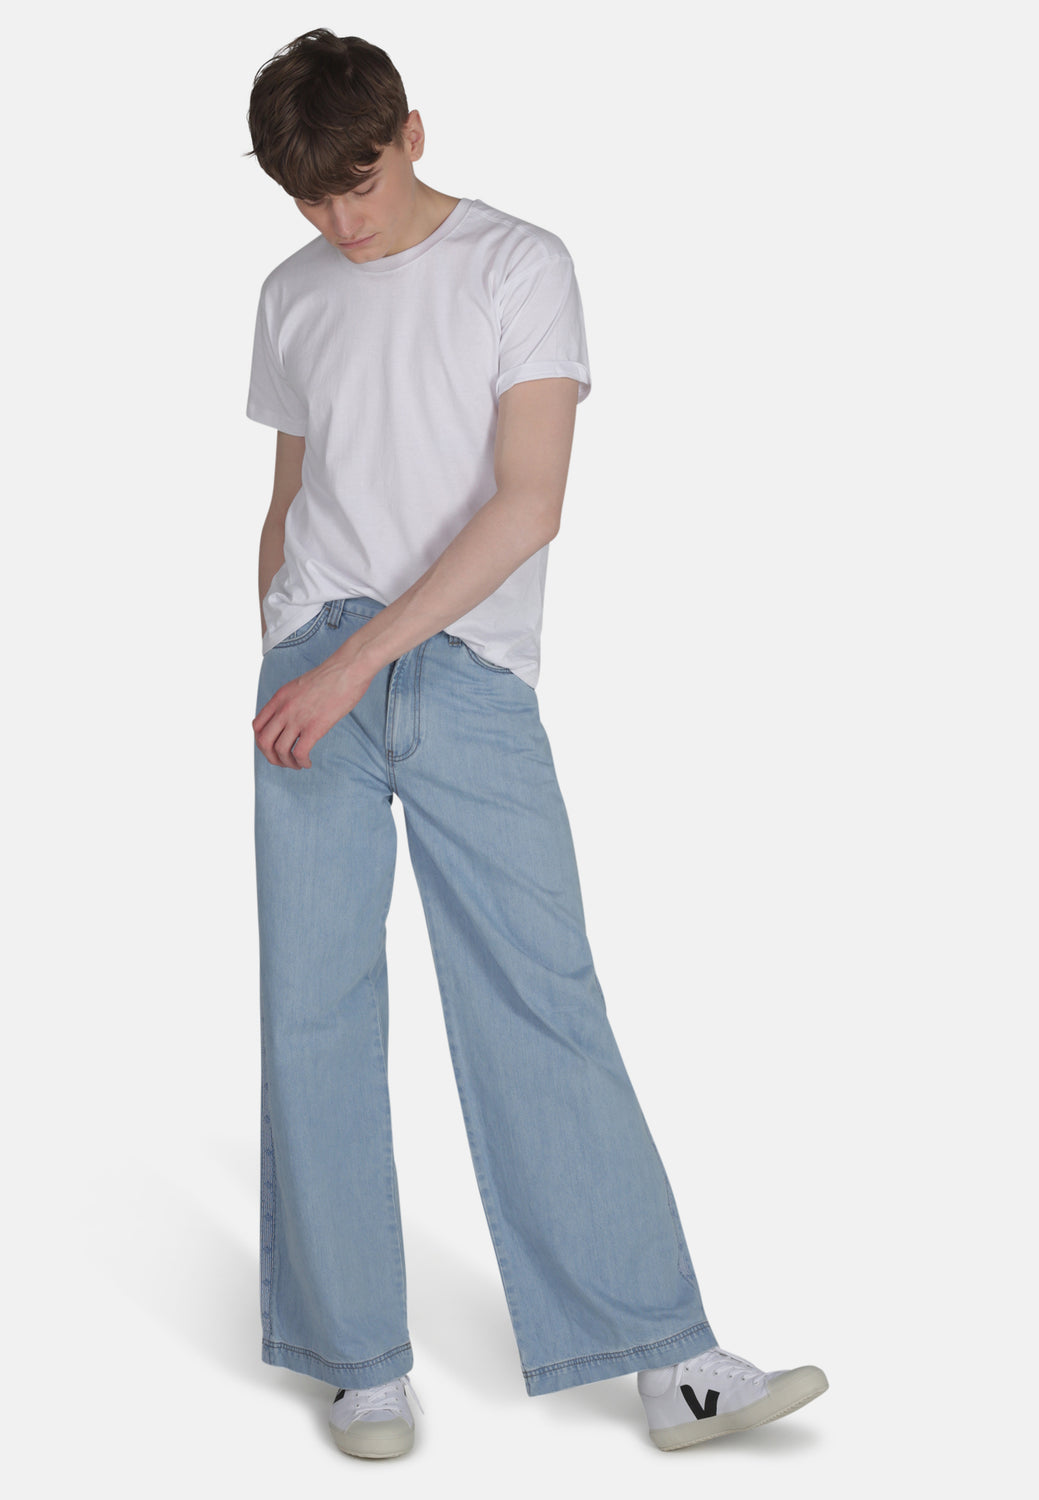 WIDE LEG // Organic Wide Leg Jeans in Light Wash with Tape - Monkee Genes Organic Jeans Denim - Men's Wide Jeans Monkee Genes Official  Monkee Genes Official